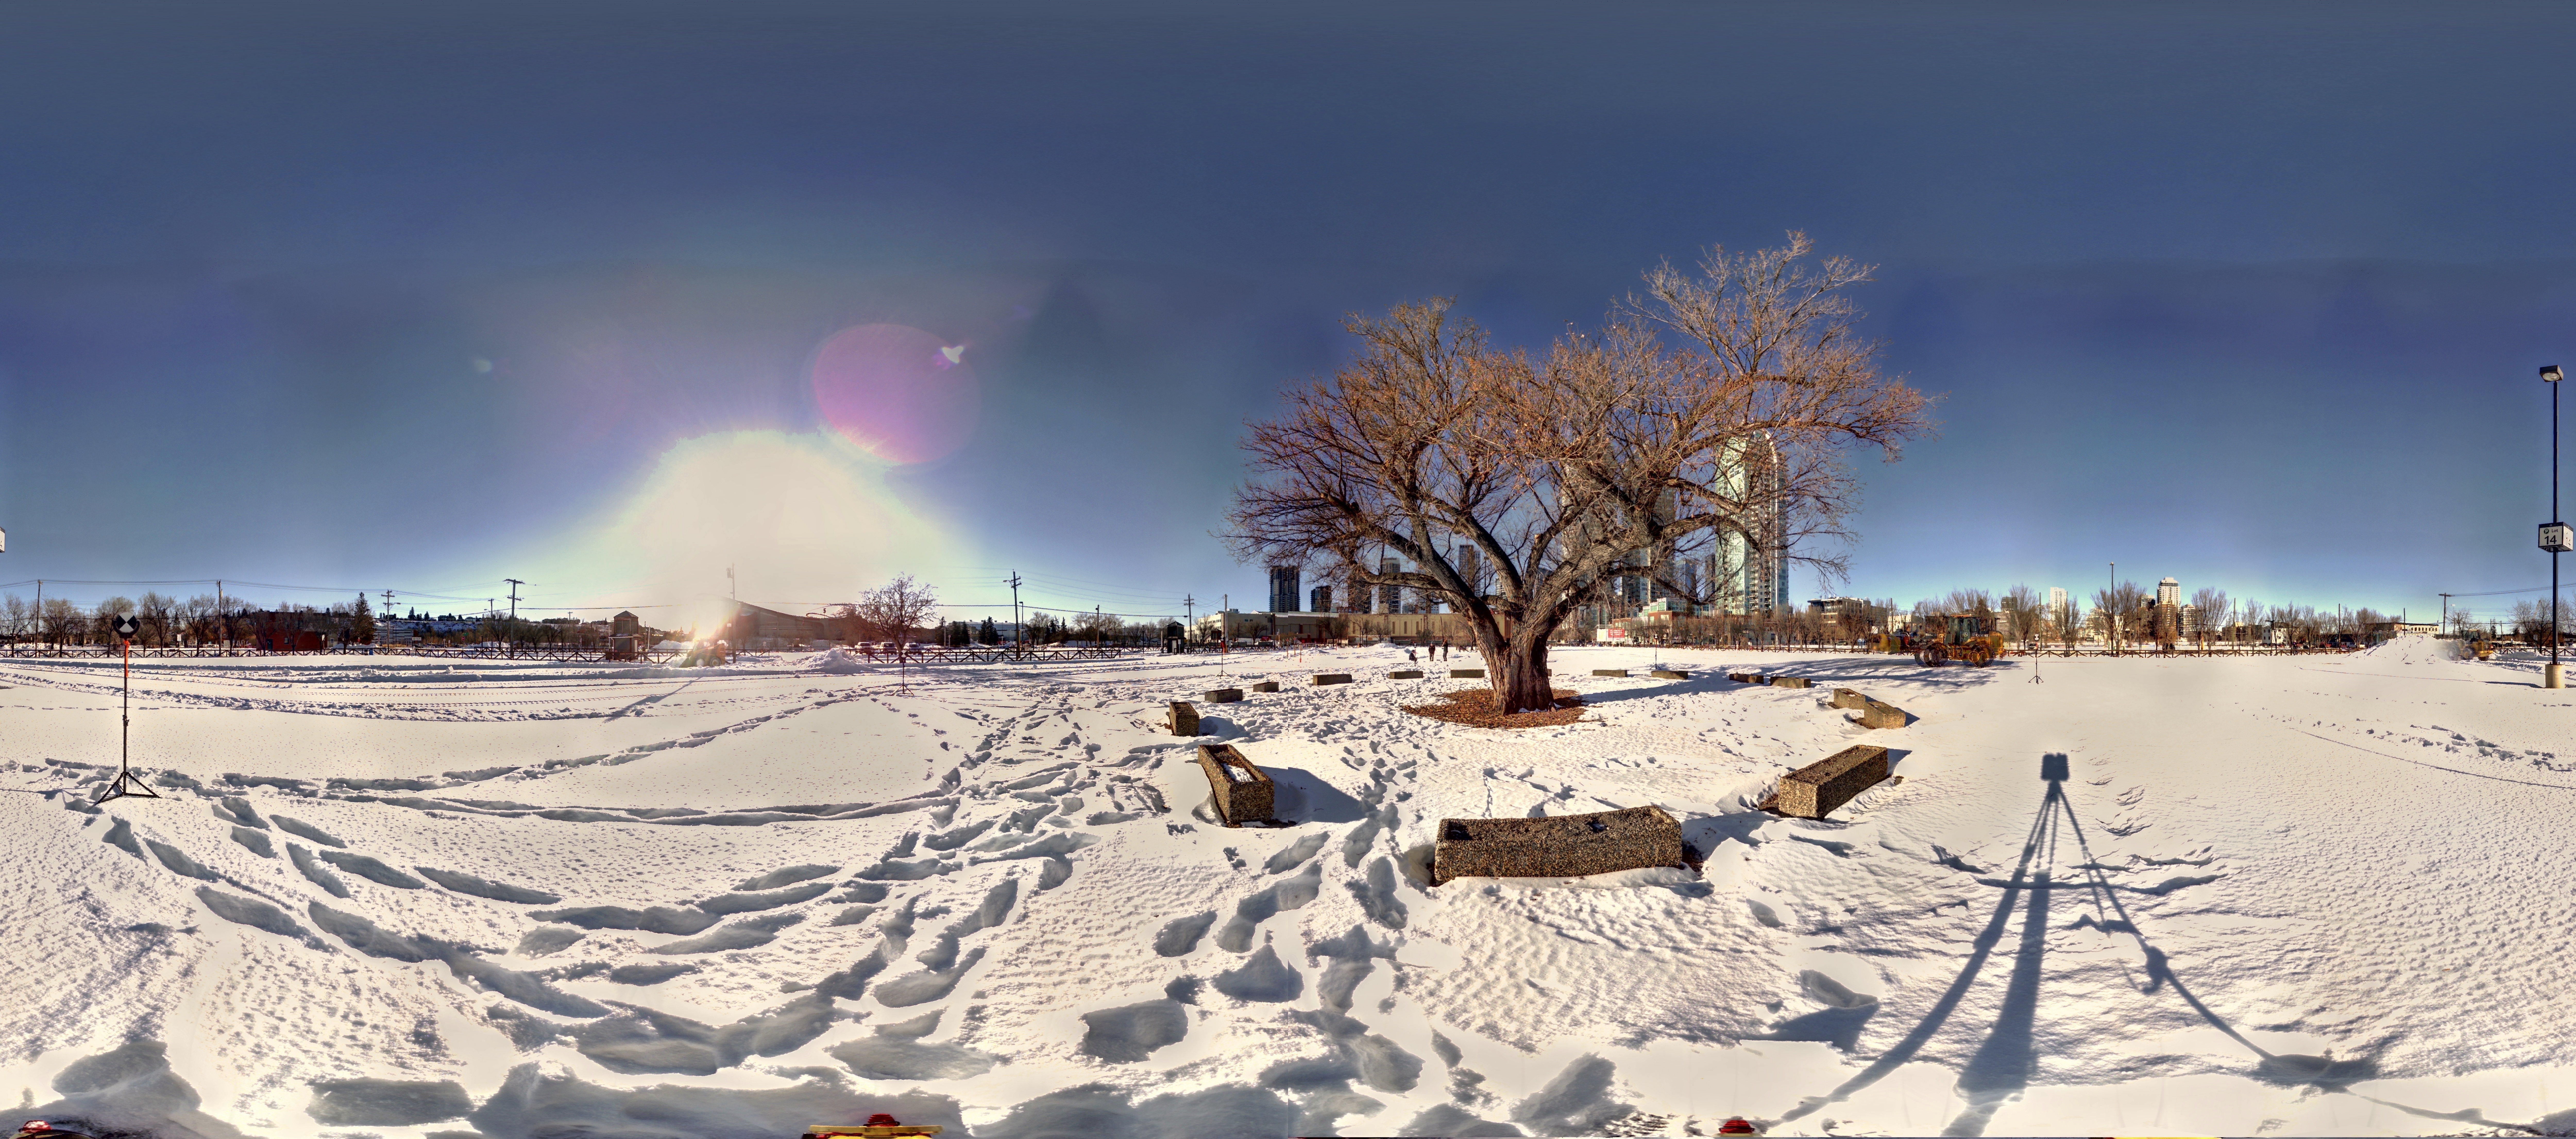 Panoramic view of the Stampede Elm and downtown Calgary from Z+F 5010X laser scanner, scanning location 10